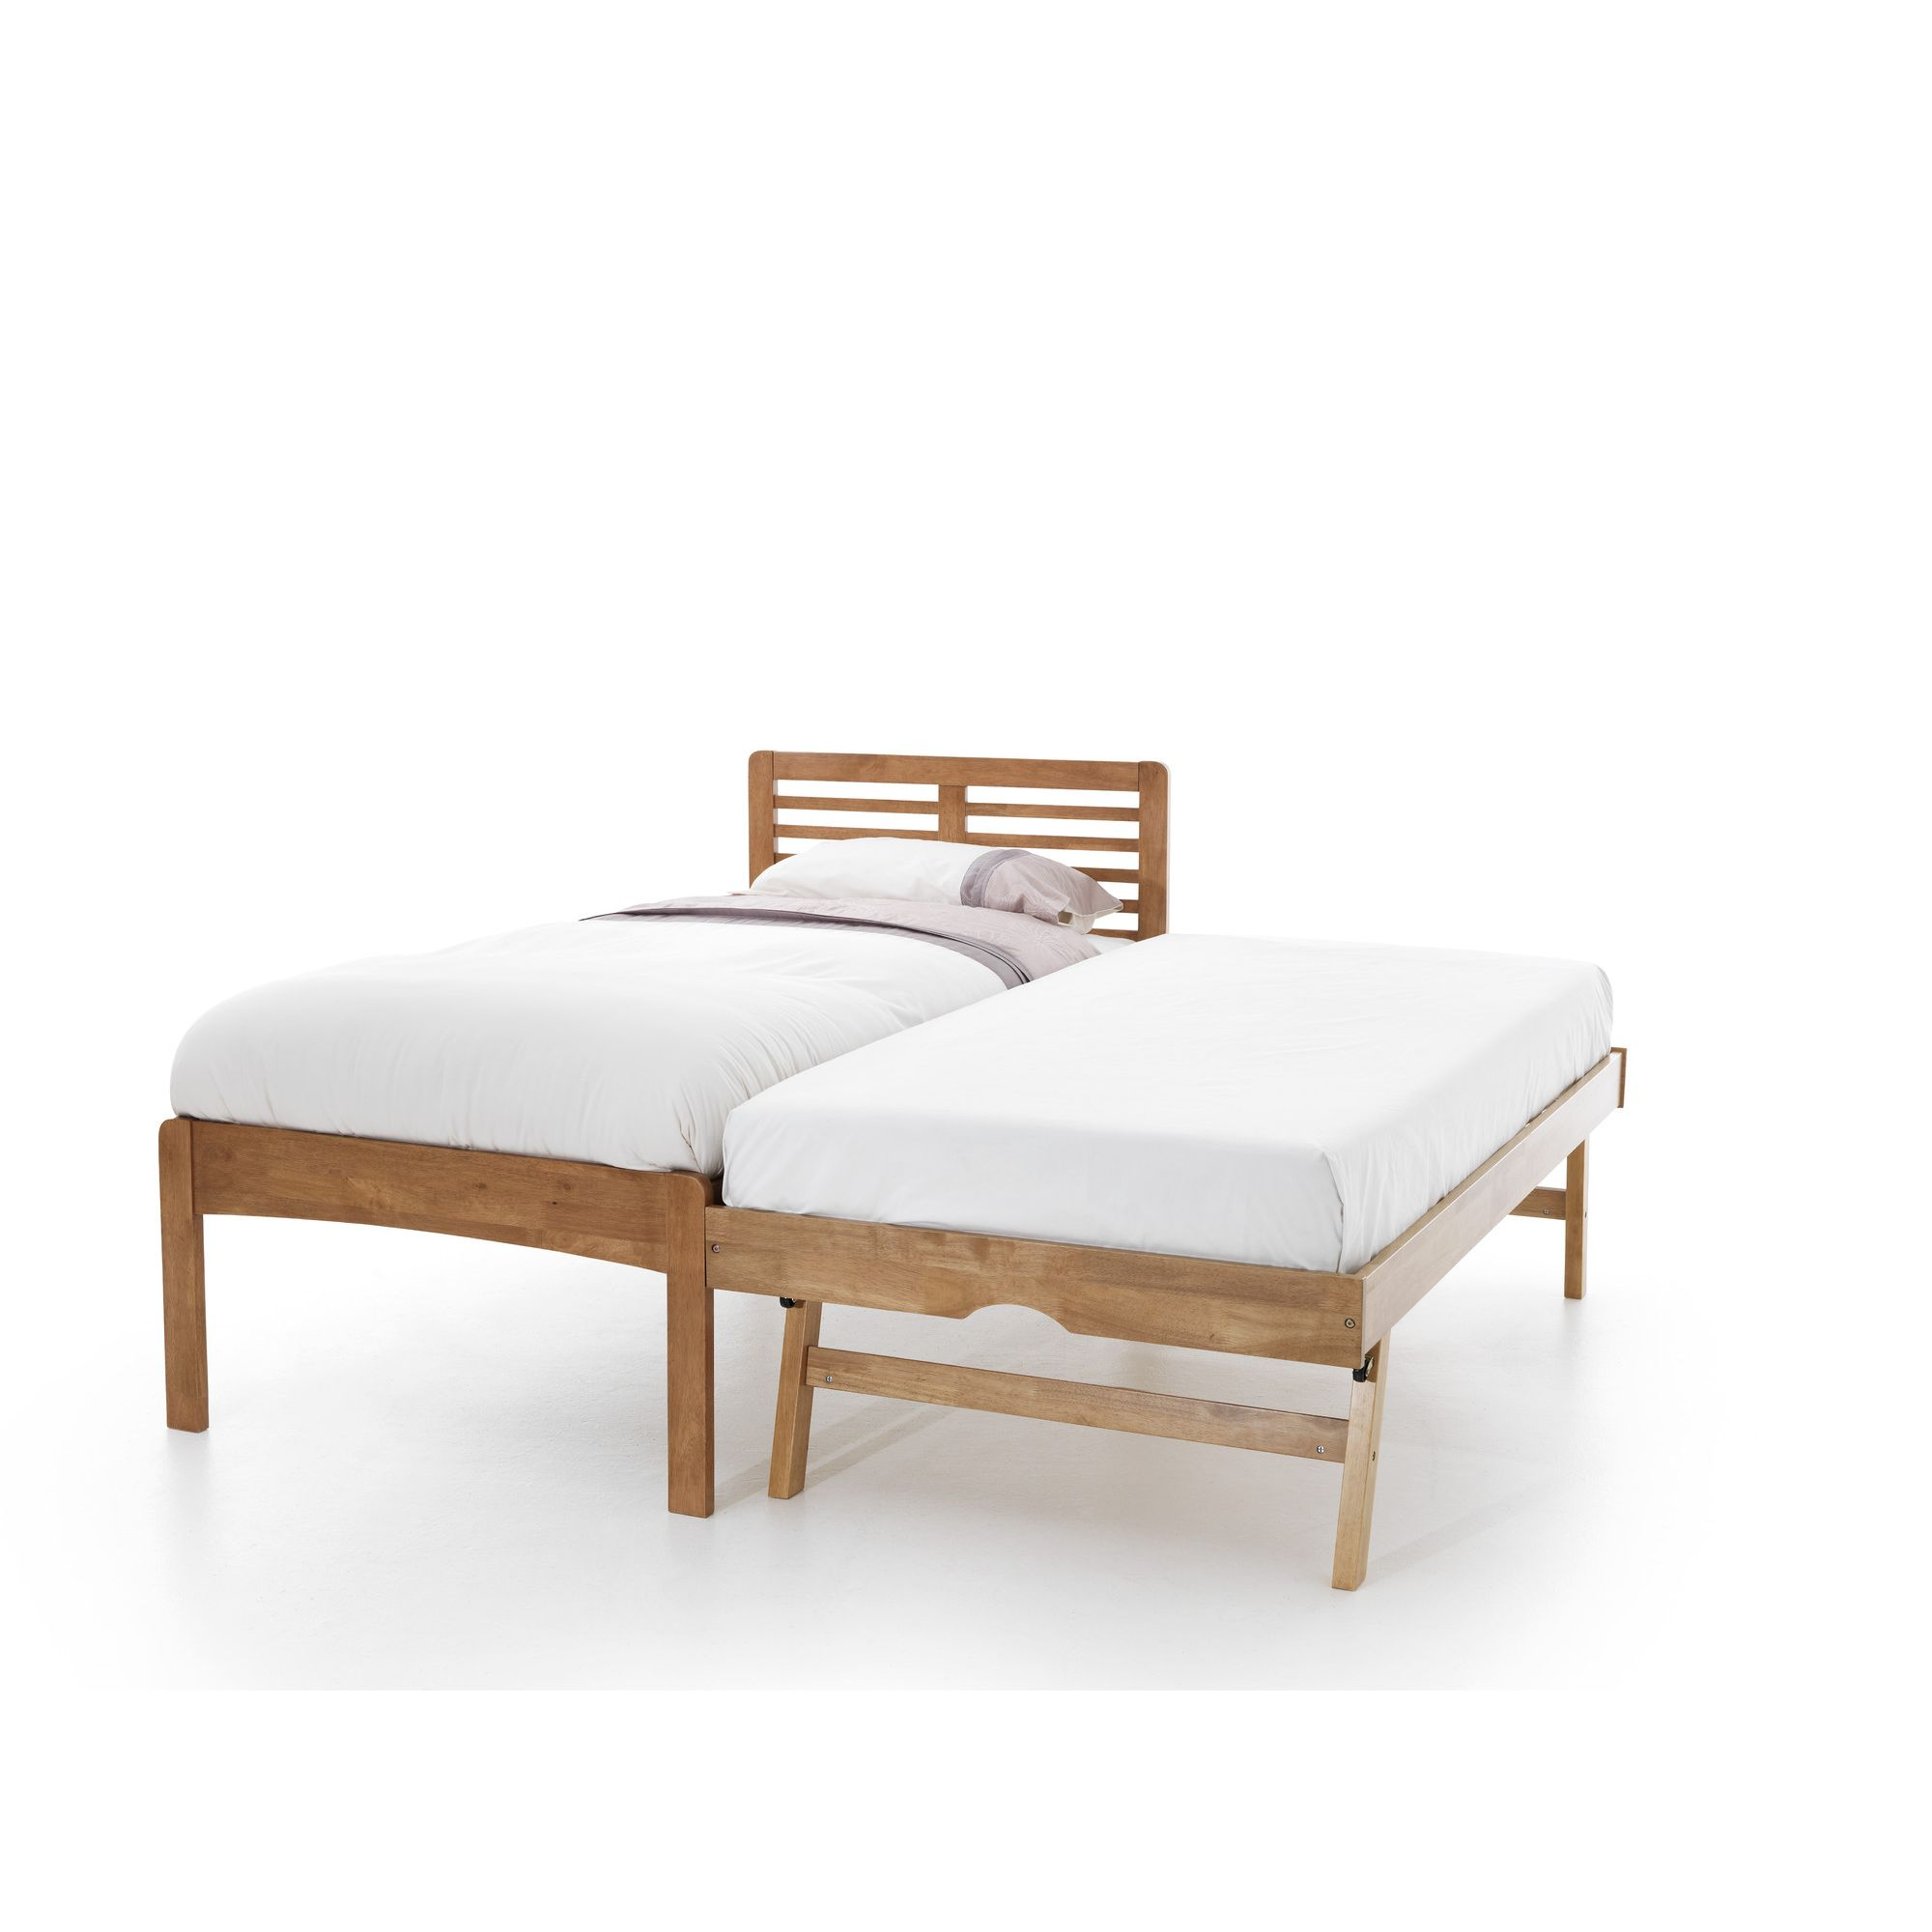 Serene Furnishings Esther Guest Bed - Honey Oak at Tesco Direct